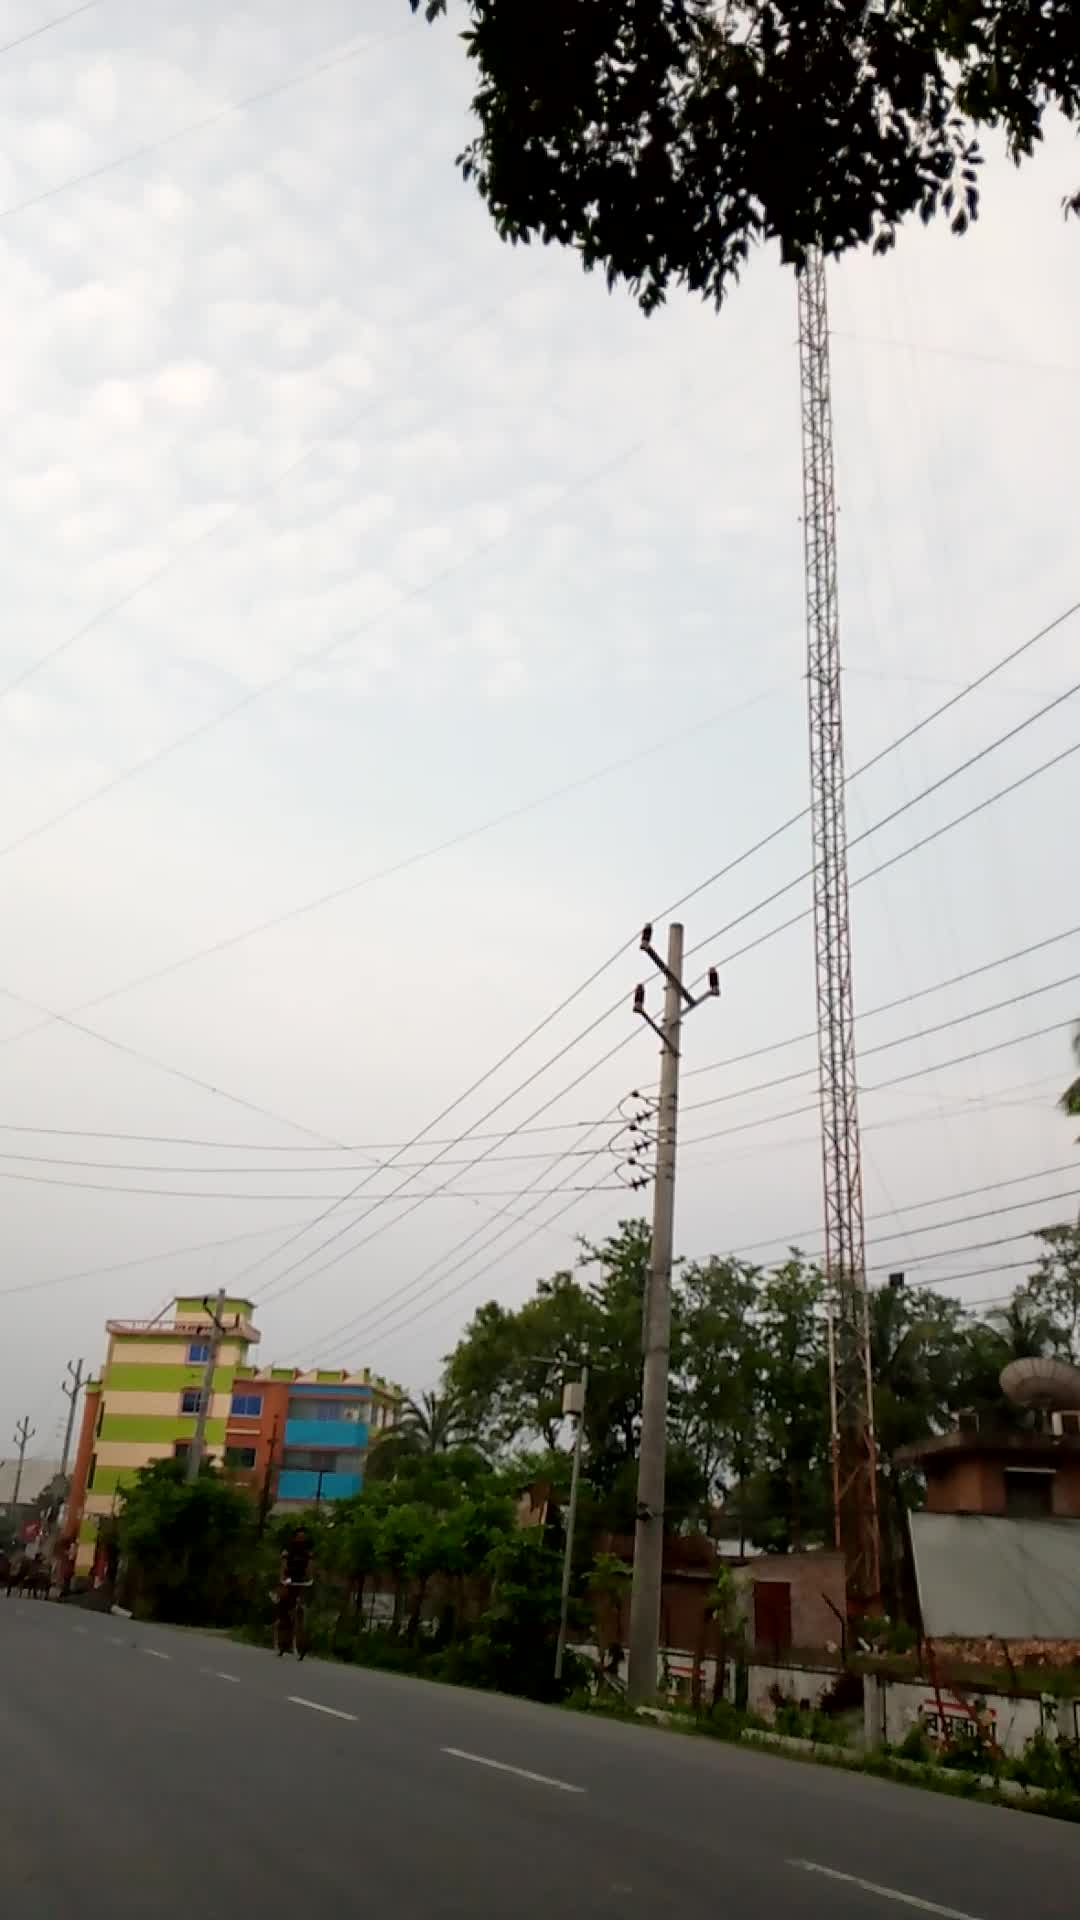 The largest tower in Satkhira